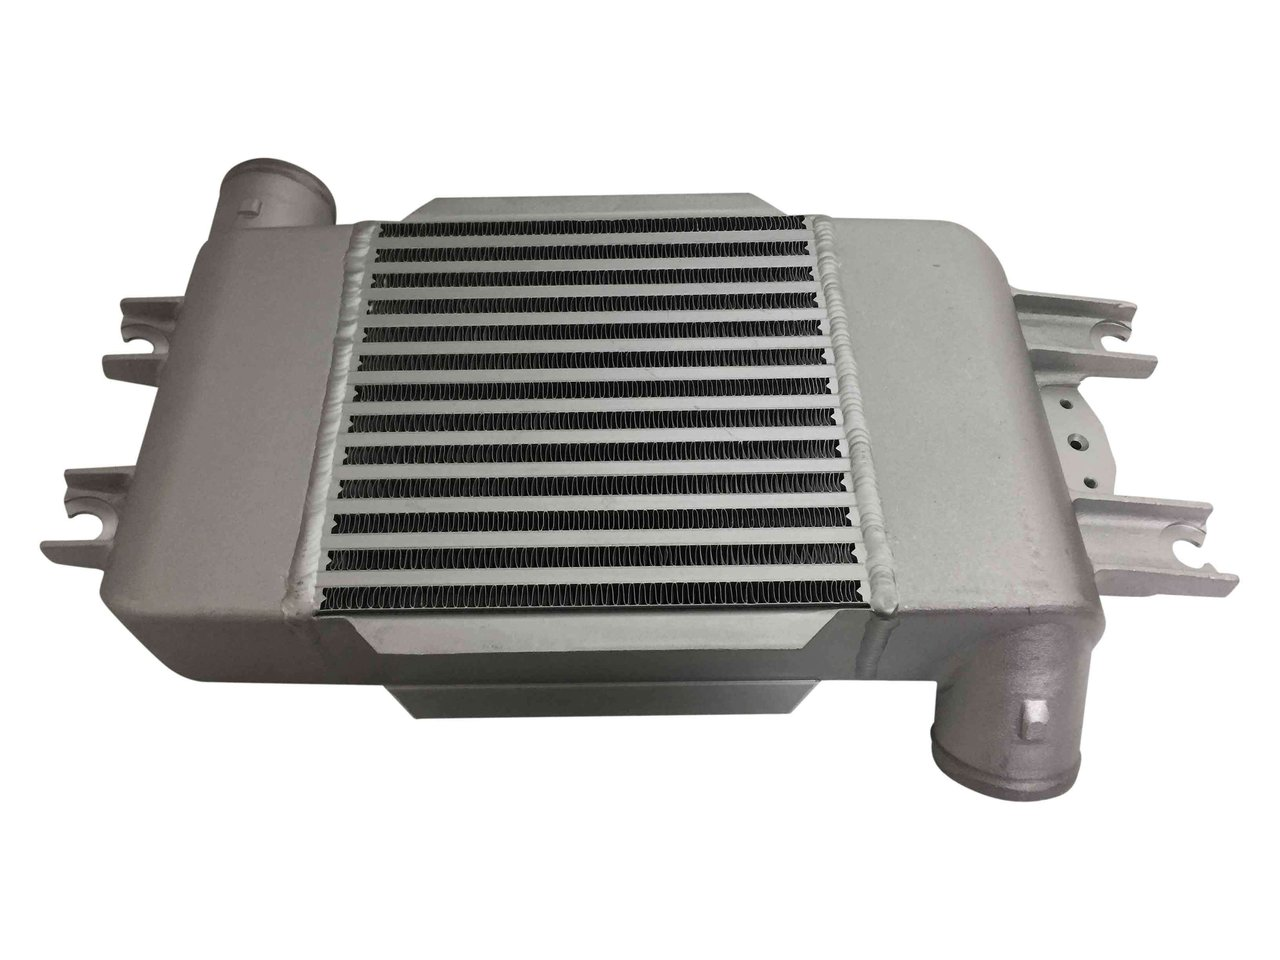 turbo intercooler for nissan patrol gu y61 zd30 common rail. Black Bedroom Furniture Sets. Home Design Ideas